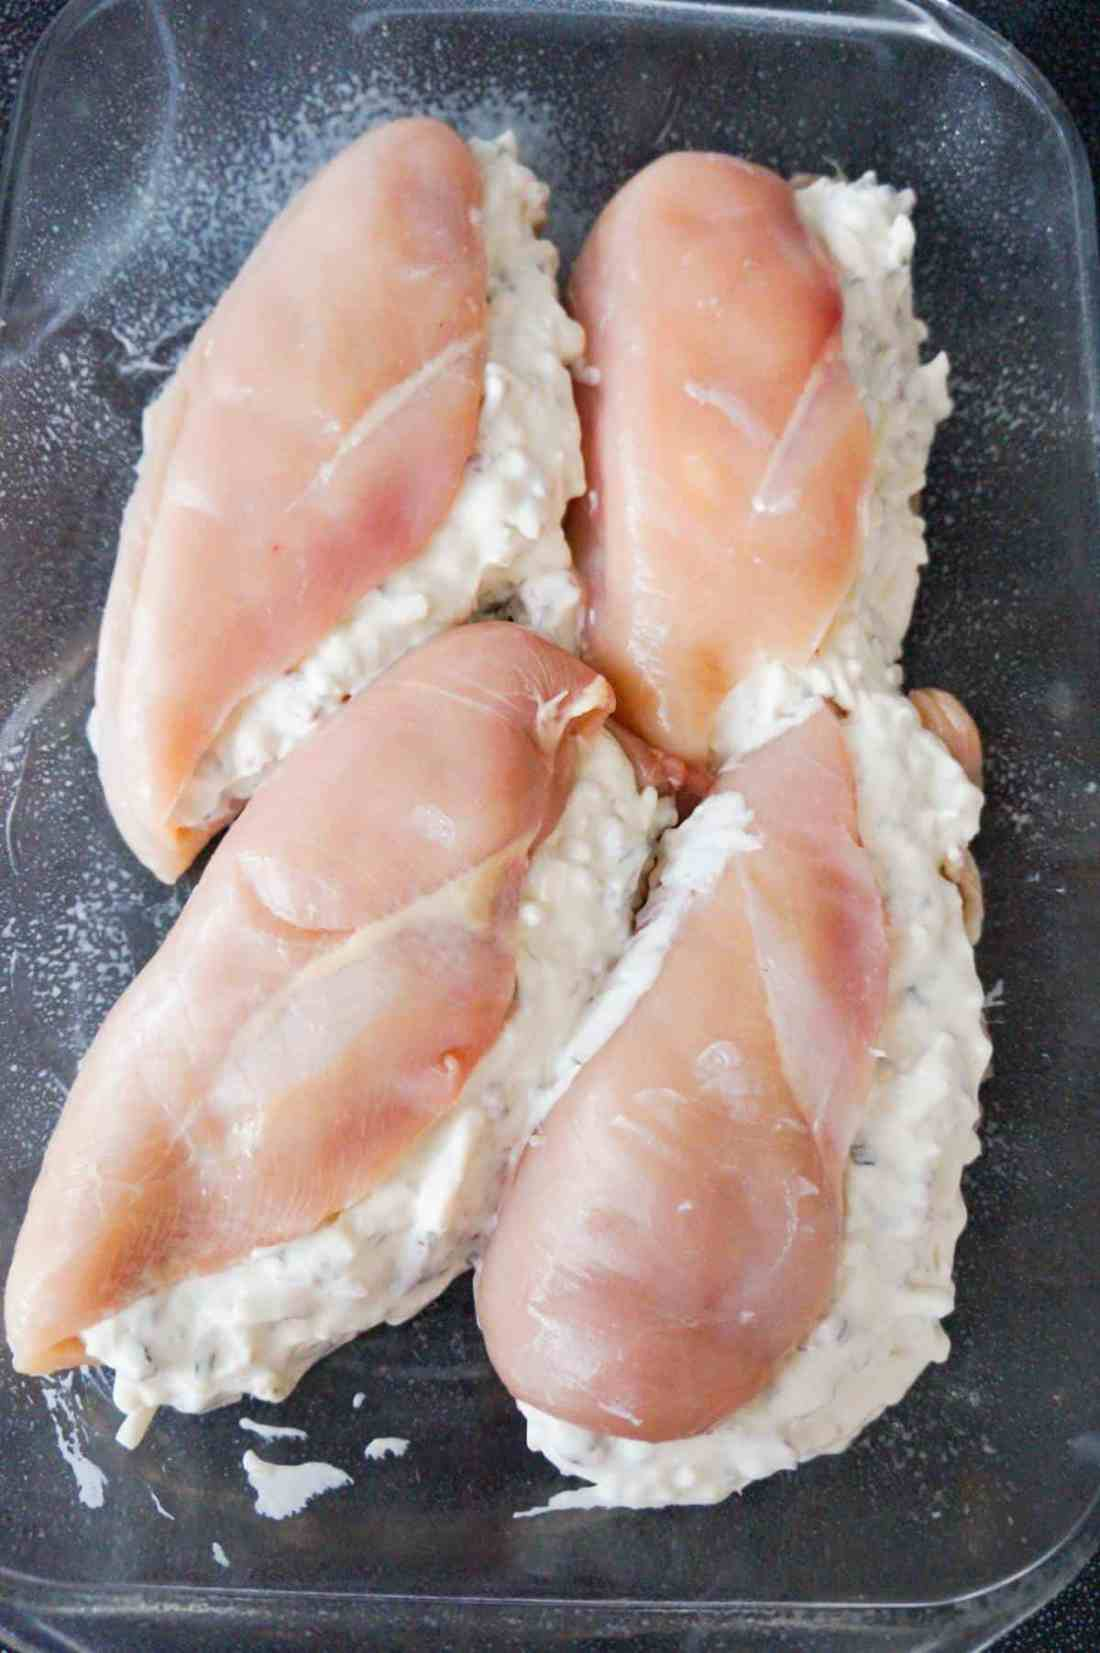 cream cheese and bacon stuffed chicken breasts before baking